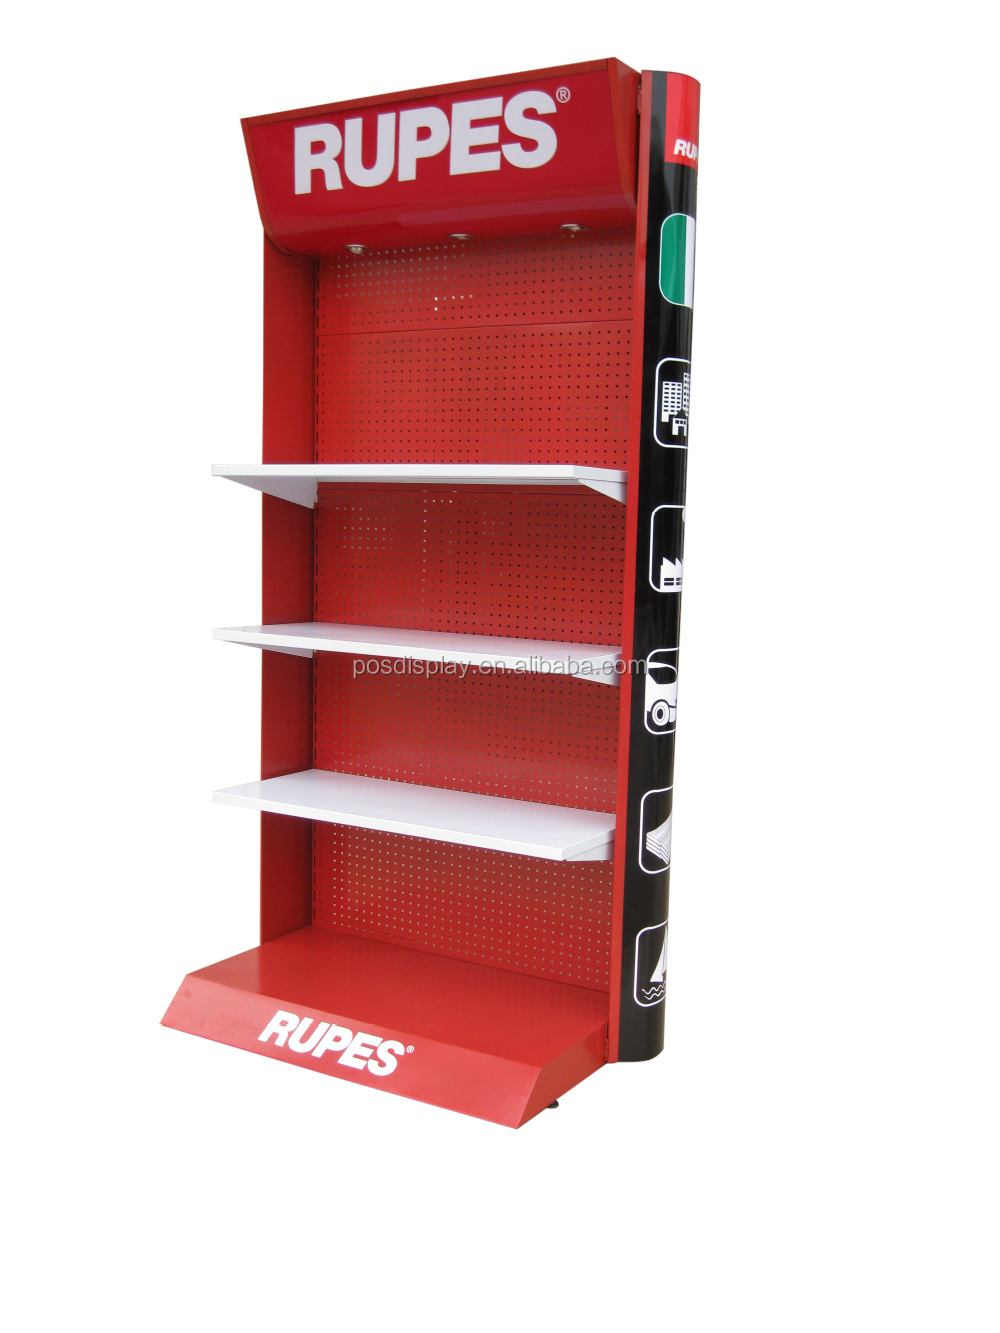 Exhibition Stands Product : Power tools wall display stand floor metal racks